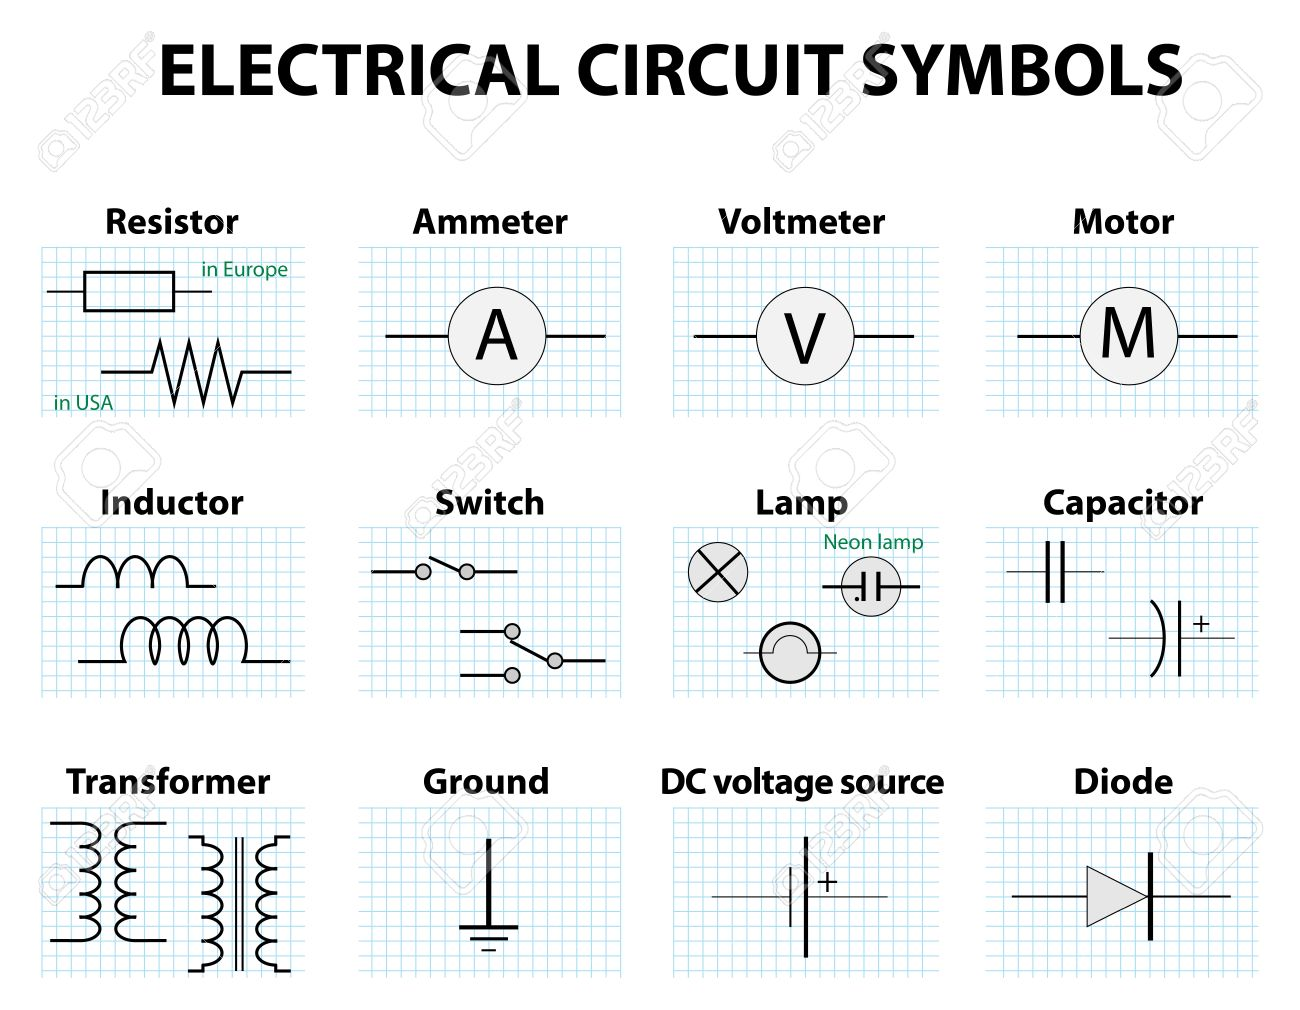 hight resolution of wiring diagram symbol for relay 9 classroomleader co u2022electronic symbol electric circuit symbol element set